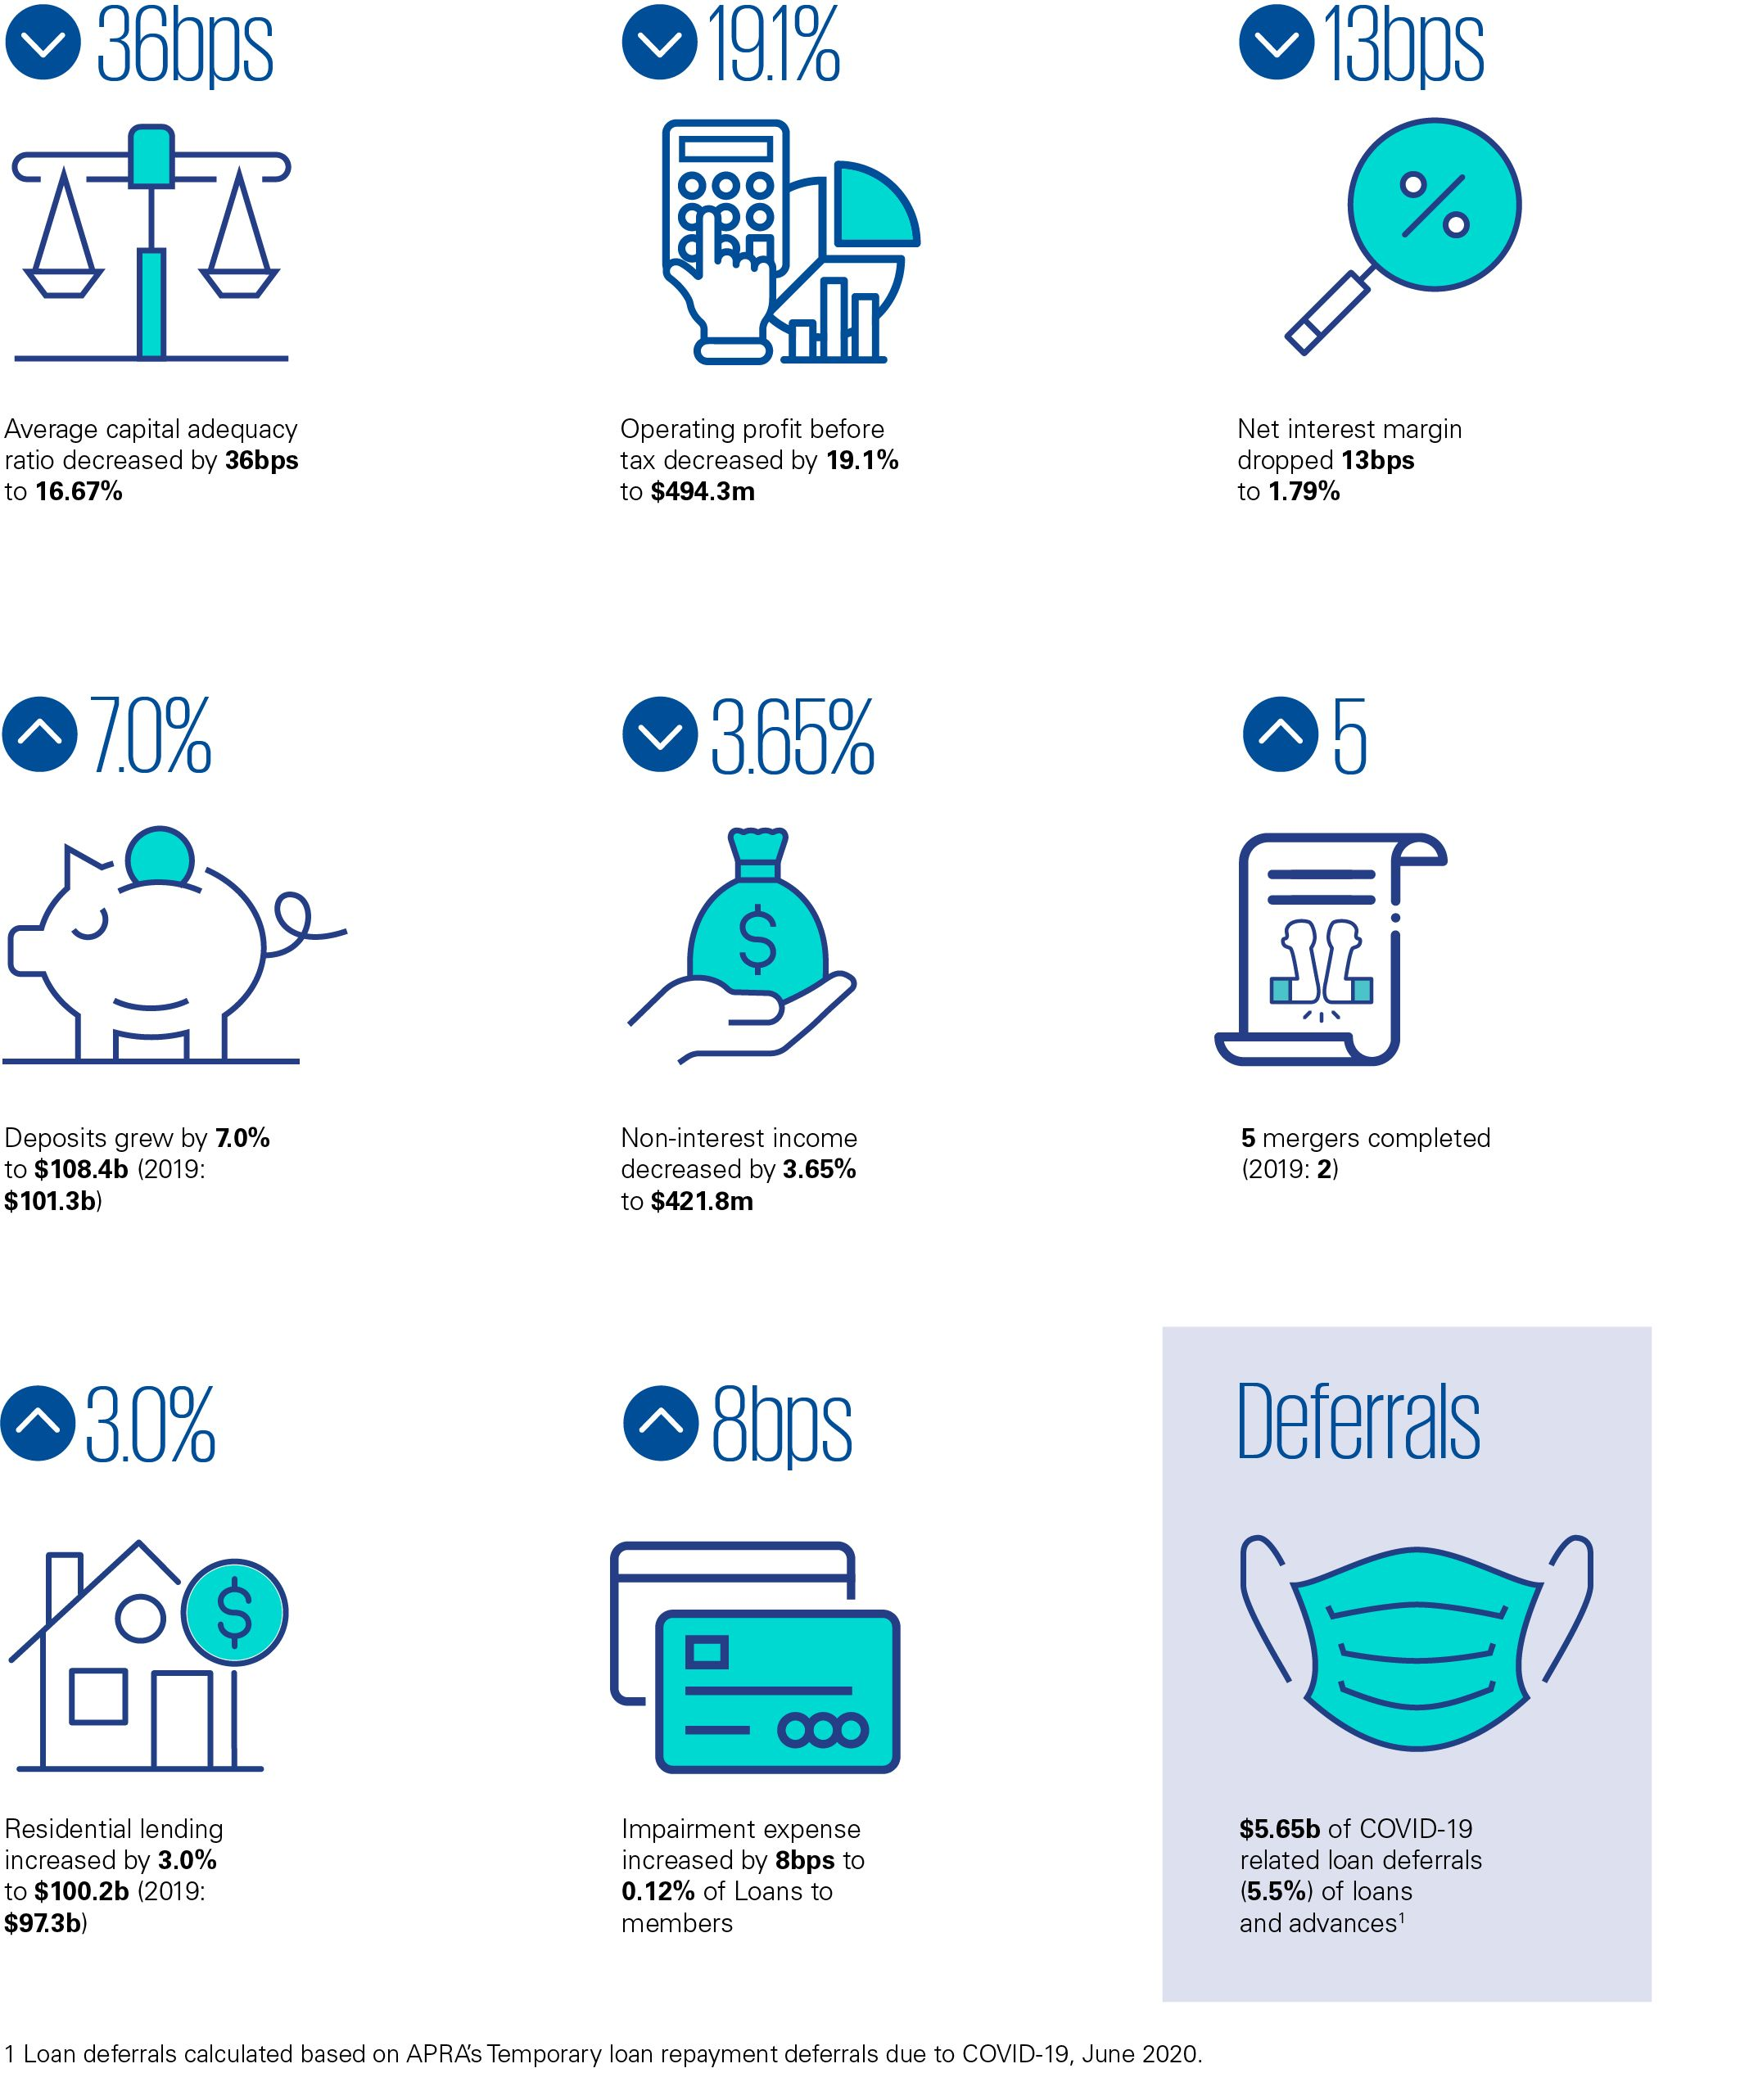 Mutuals industry review 2020 infographic